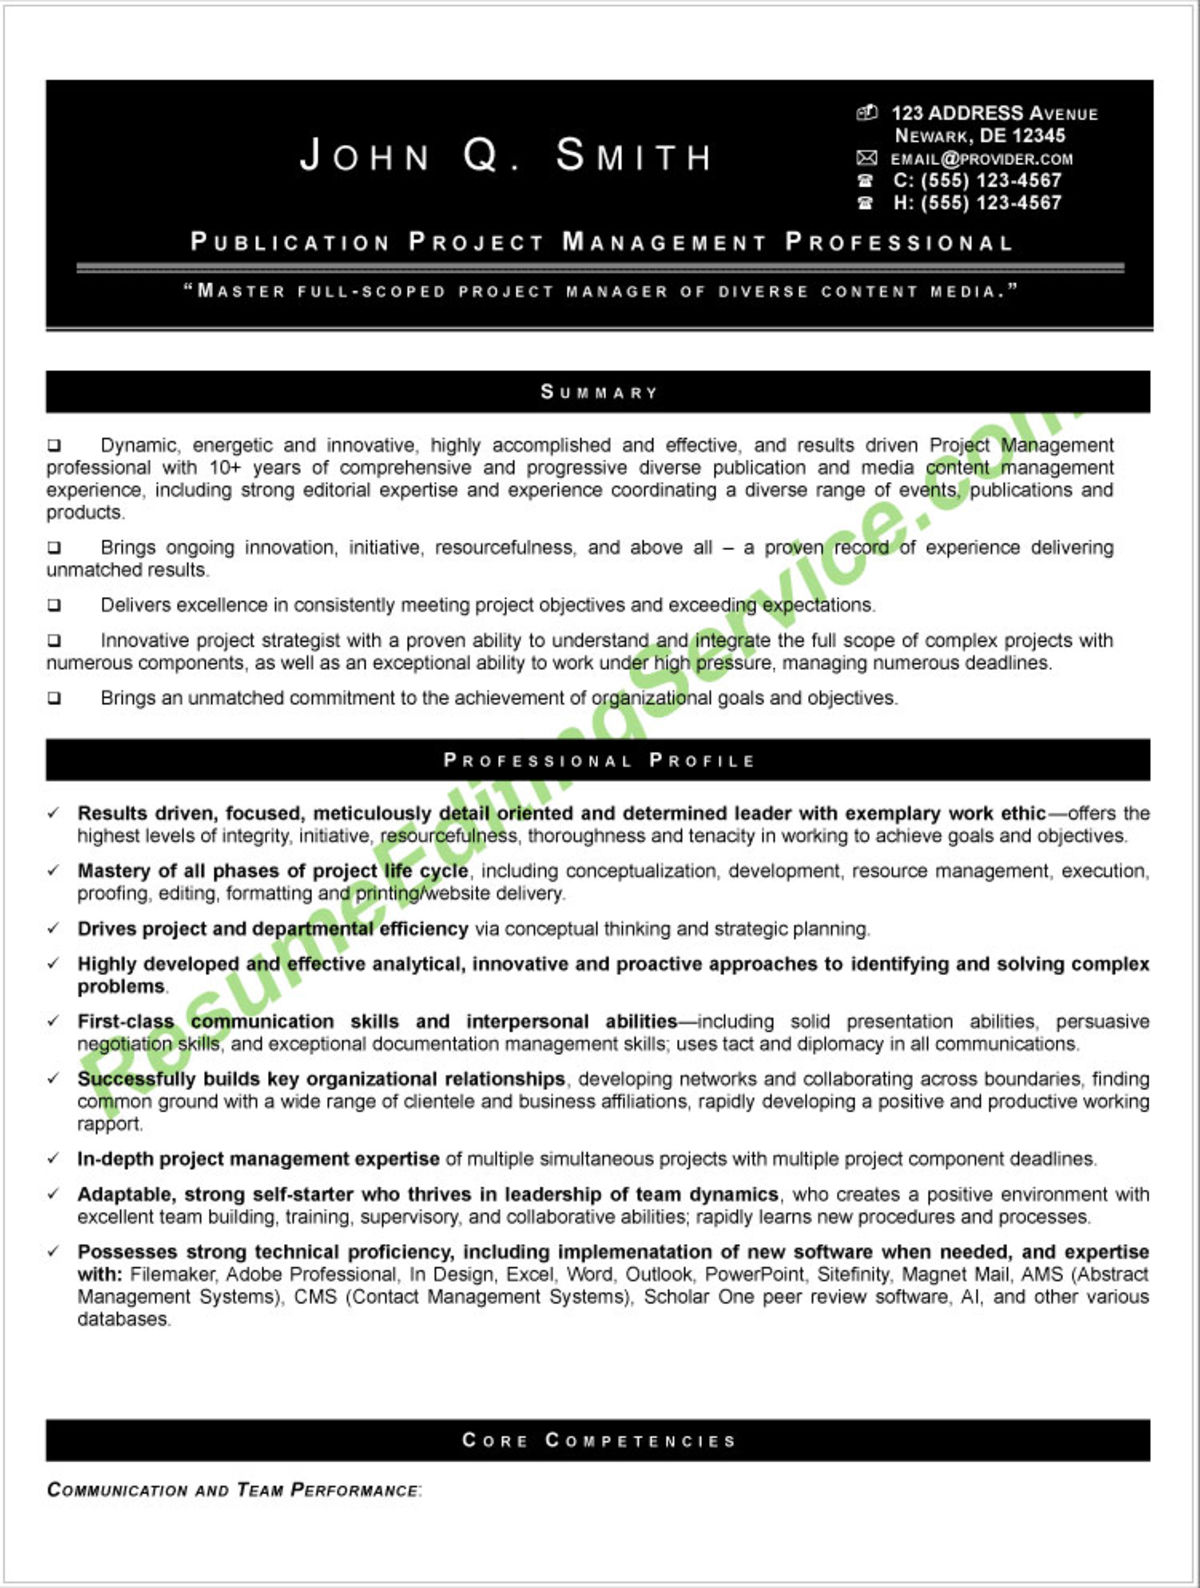 resume editing Resume writing tips will help you get more job offers englishlanguagestep 1/3do not add foreign languages if you do not know them at ahigher levelnexttips & tricks edit your resume as you like.